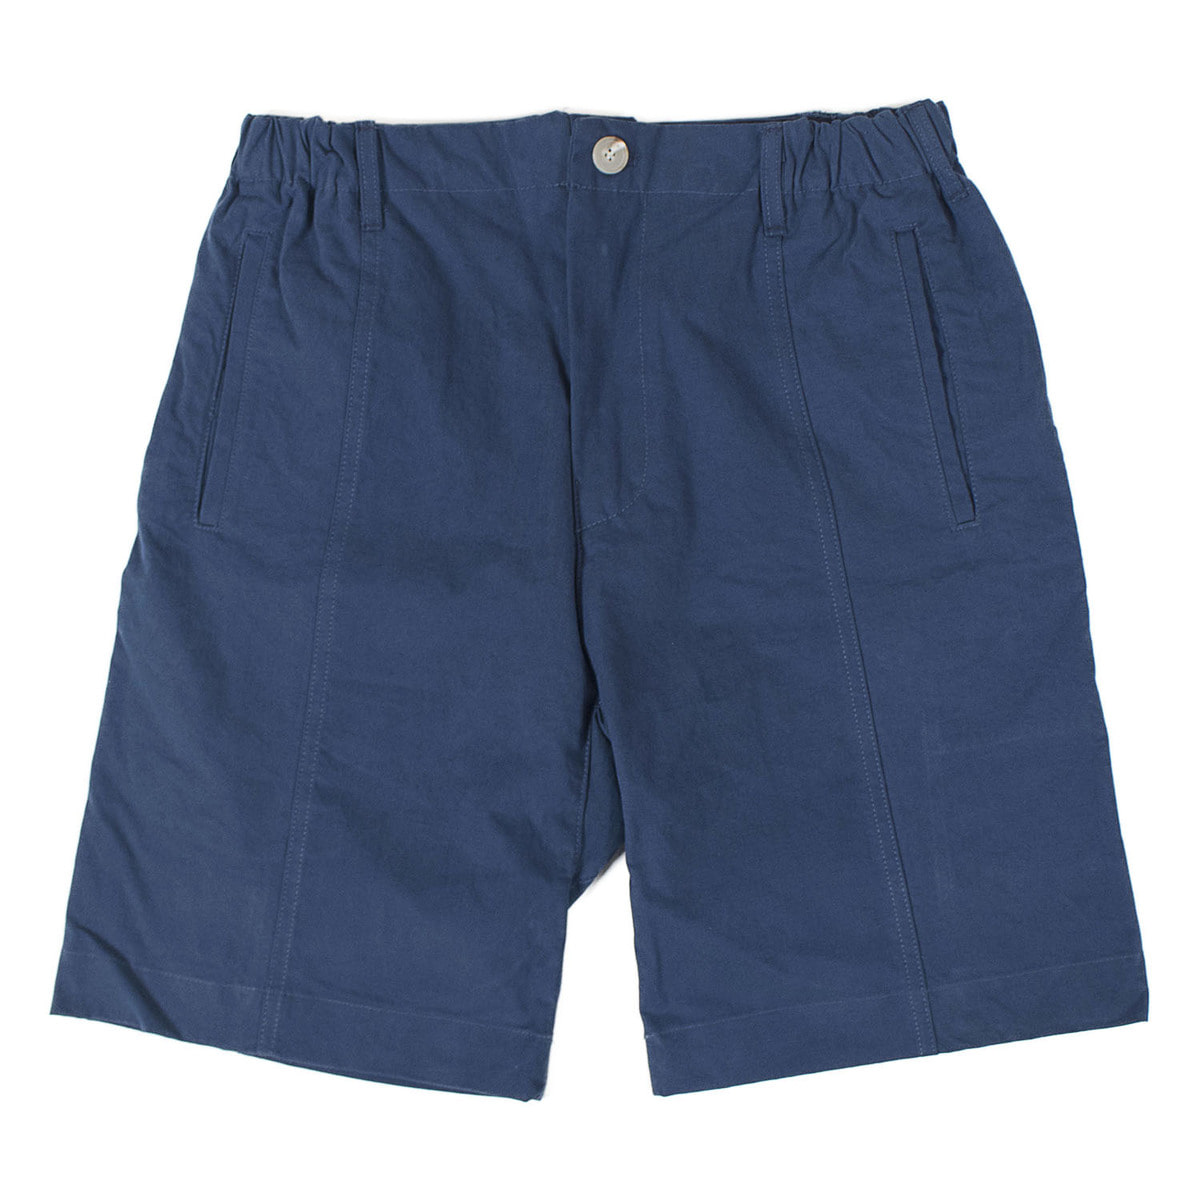 Semi Baggy Shorts (Blue)